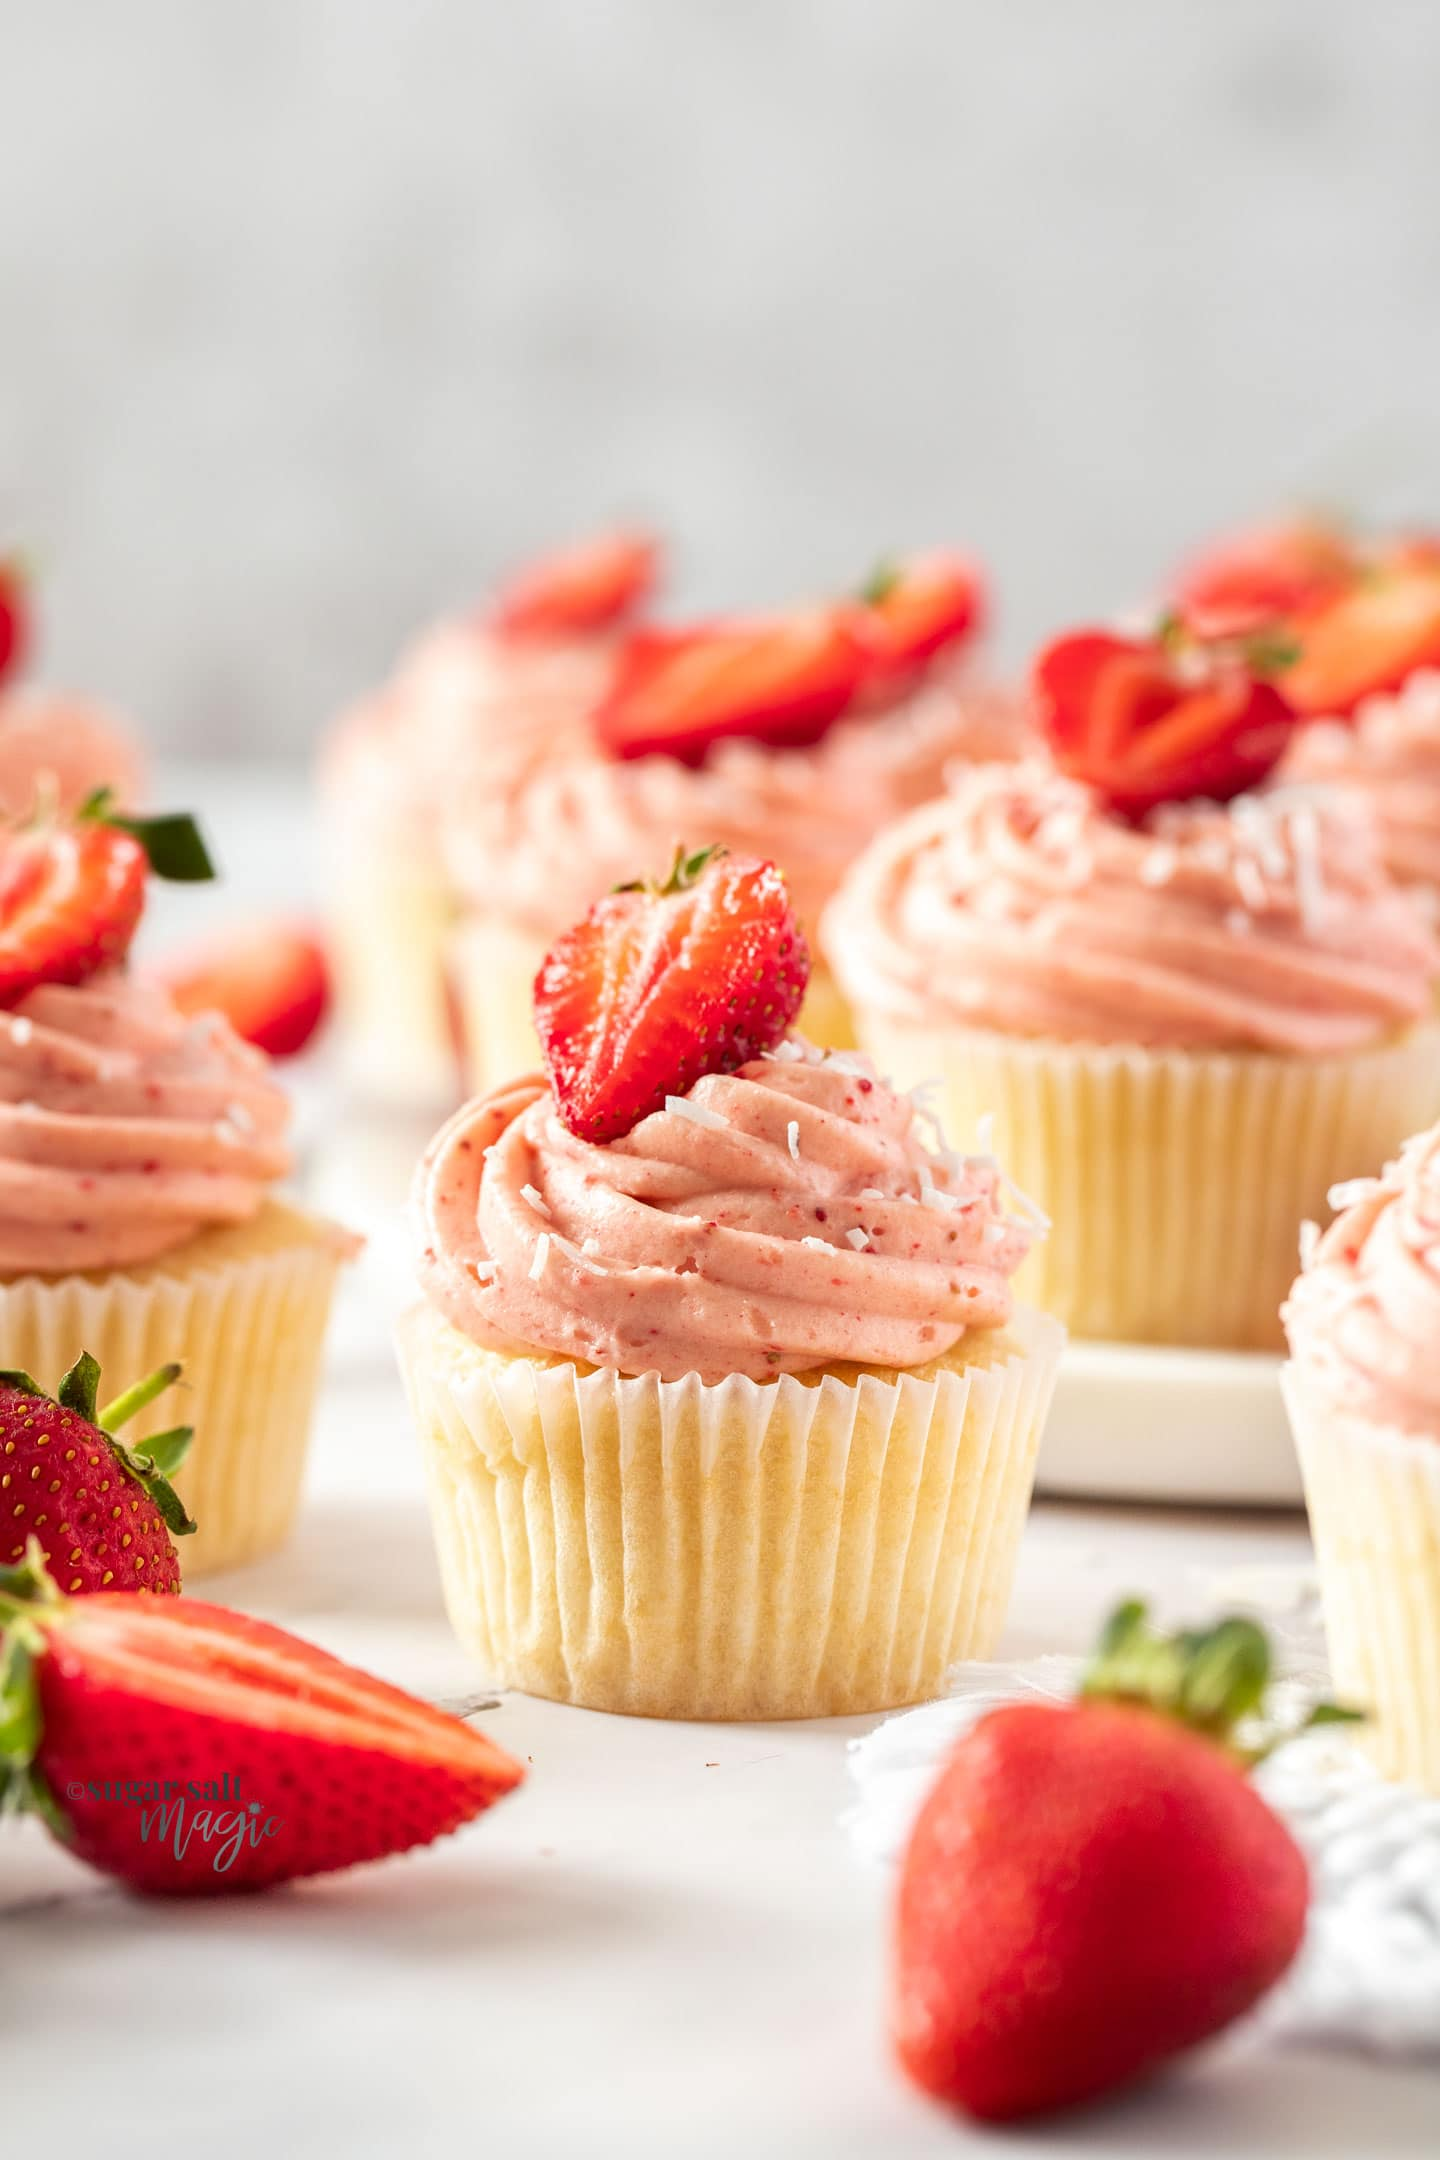 Closeup of a strawberry cupcake with a strawberry on top